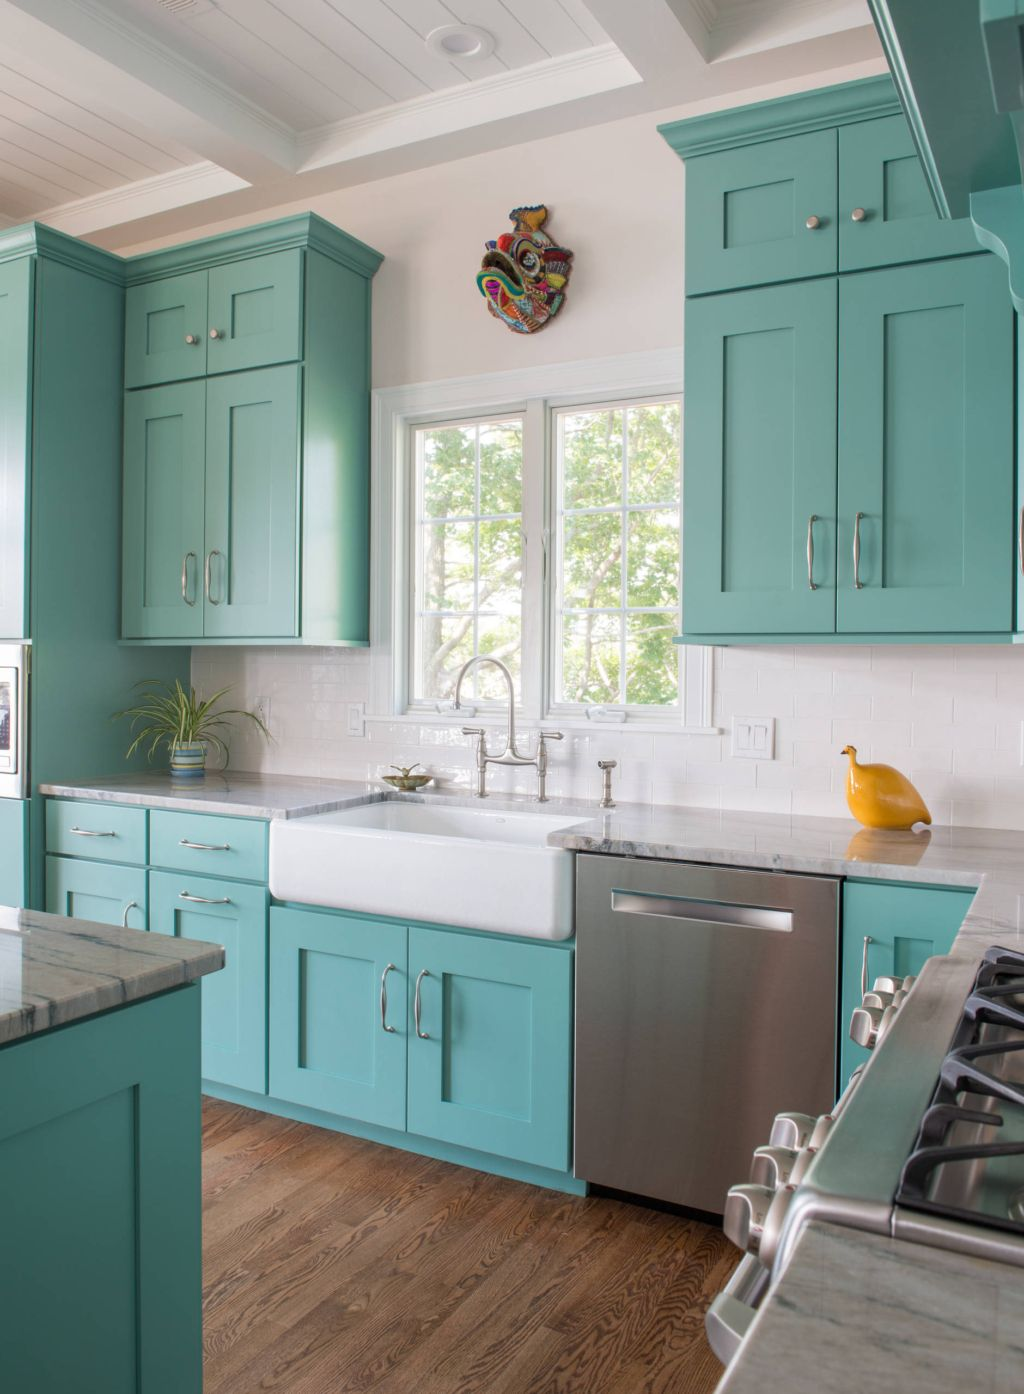 Sherwin williams composed sw 6472 paint colors for Teal kitchen cabinets